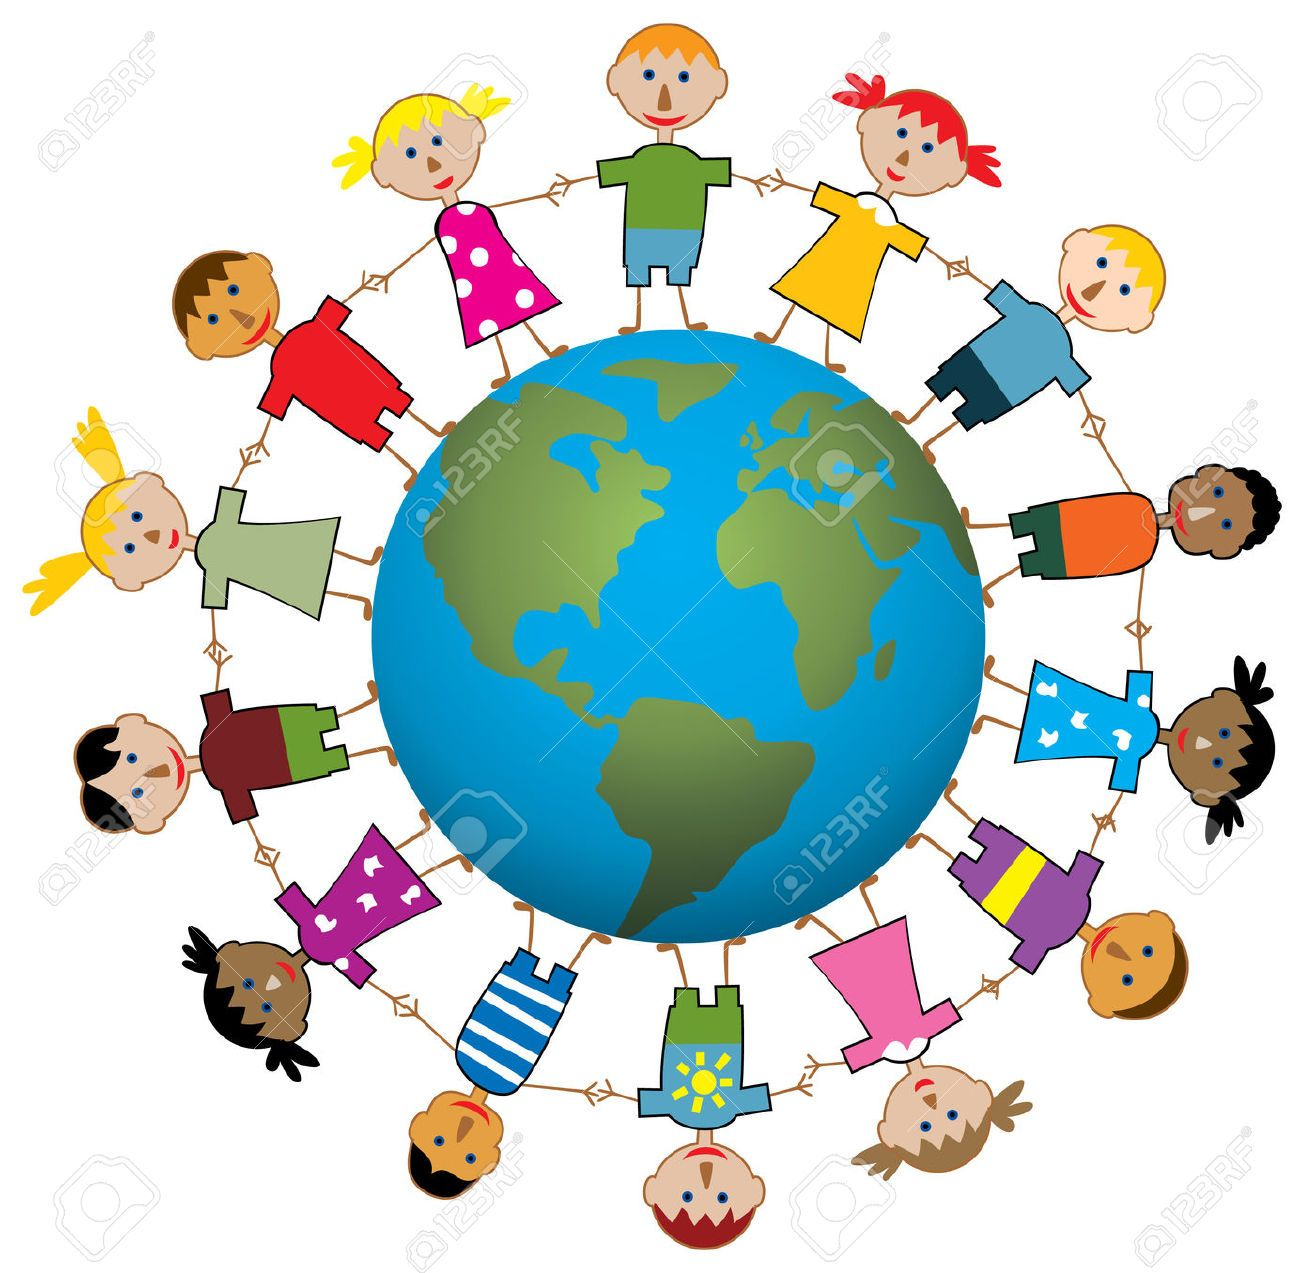 children around the world free cliparts vectors and jpg 3rd rh pinterest co uk christmas around the world clipart christmas around the world clipart